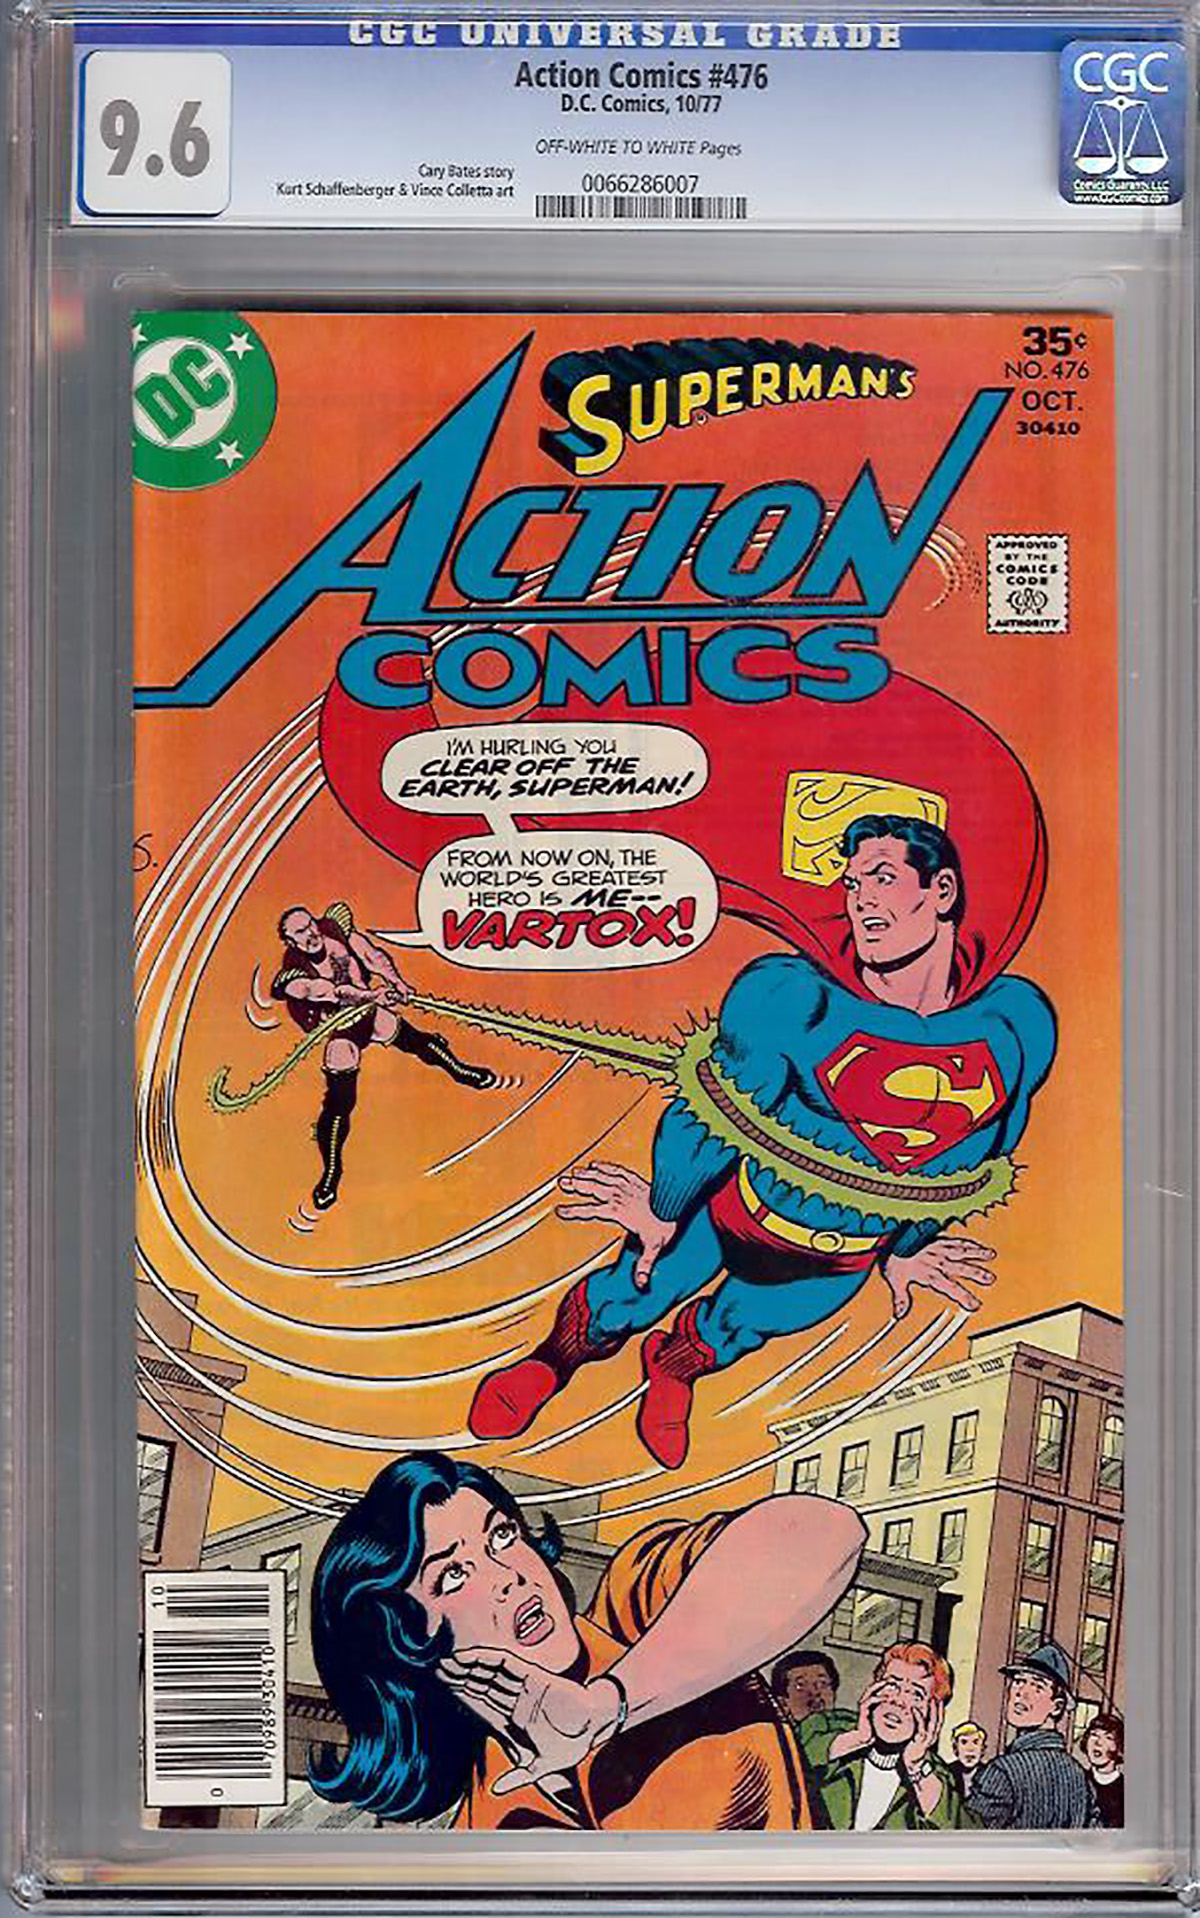 Action Comics #476 CGC 9.6 ow/w